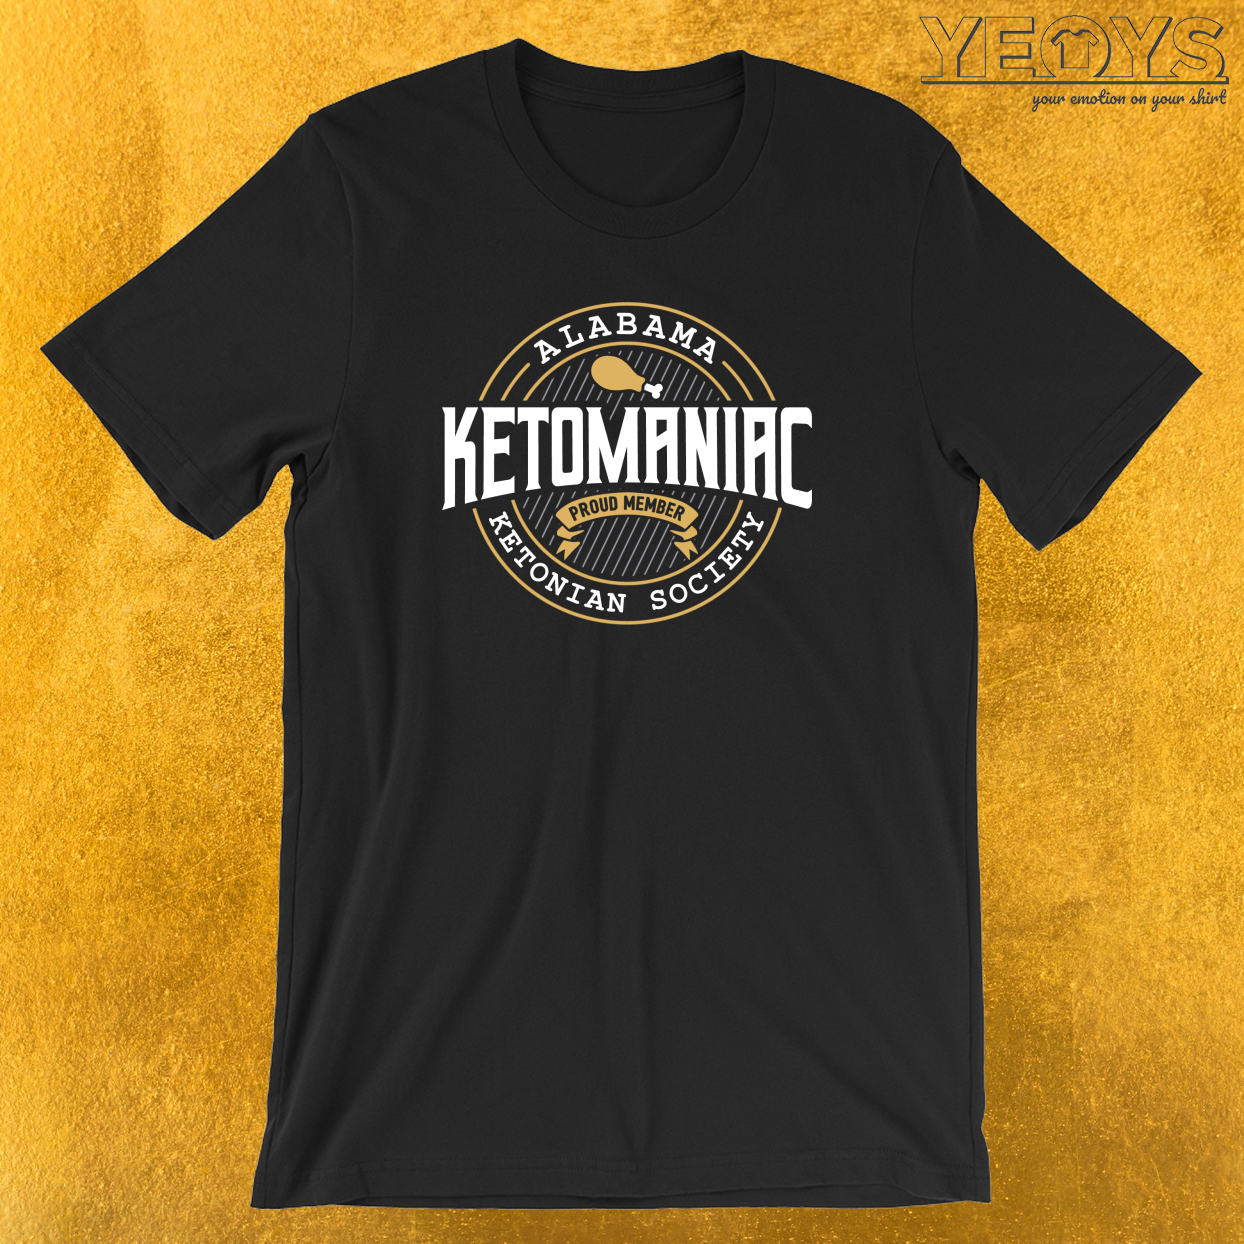 Ketomaniac Member Of Alabama's Ketonians Society T-Shirt